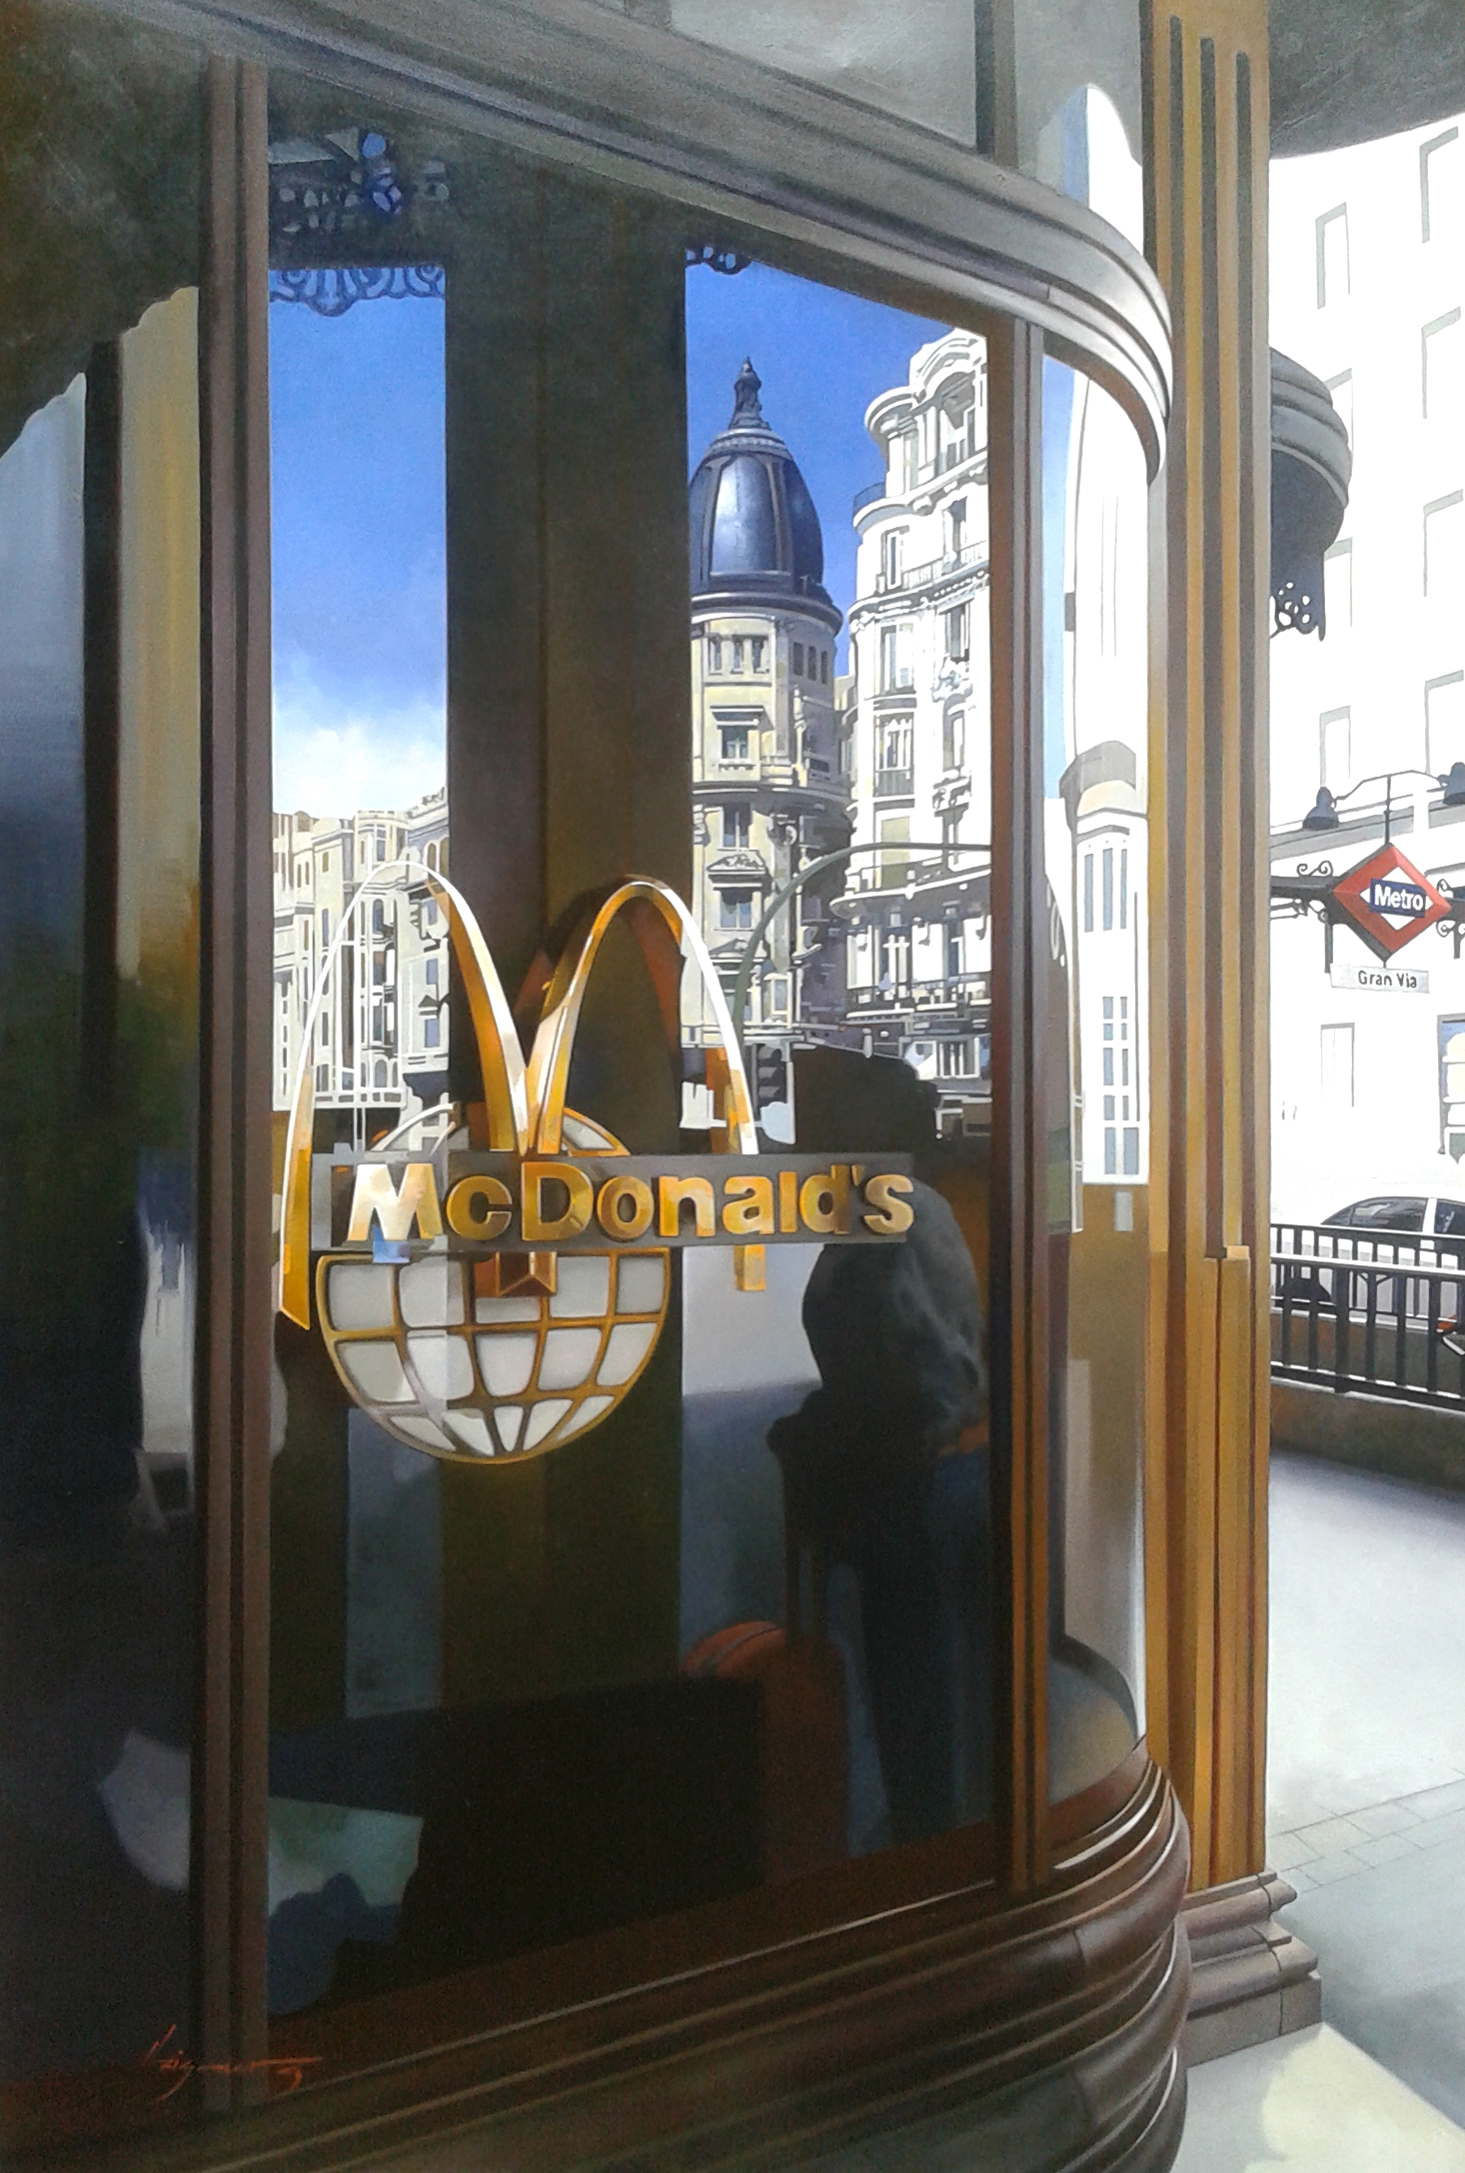 Mc Shopping 120x80 cm. oil canv - josehiguera | ello